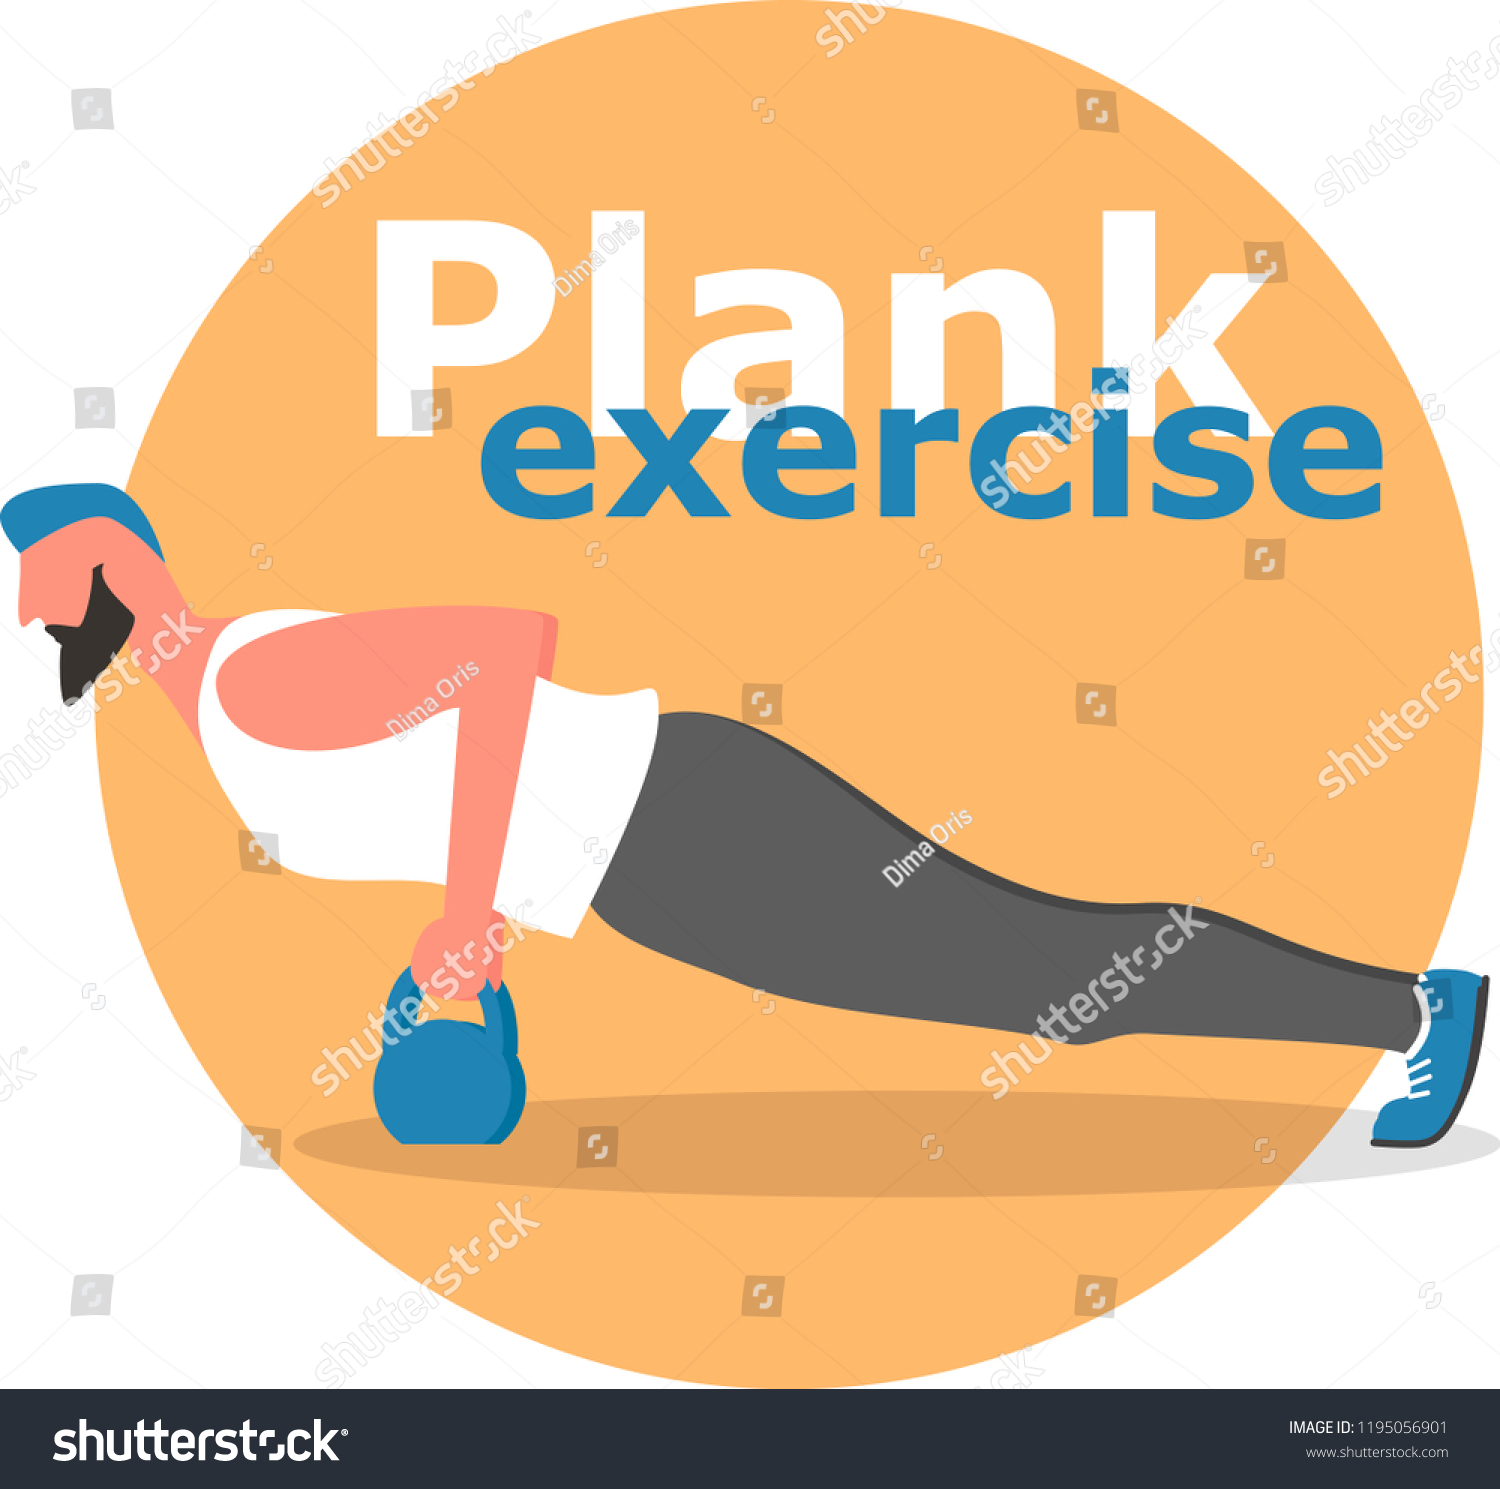 Fitness Man Doing Planking Exercise Planksgiving Stock Vector Royalty Free 1195056901